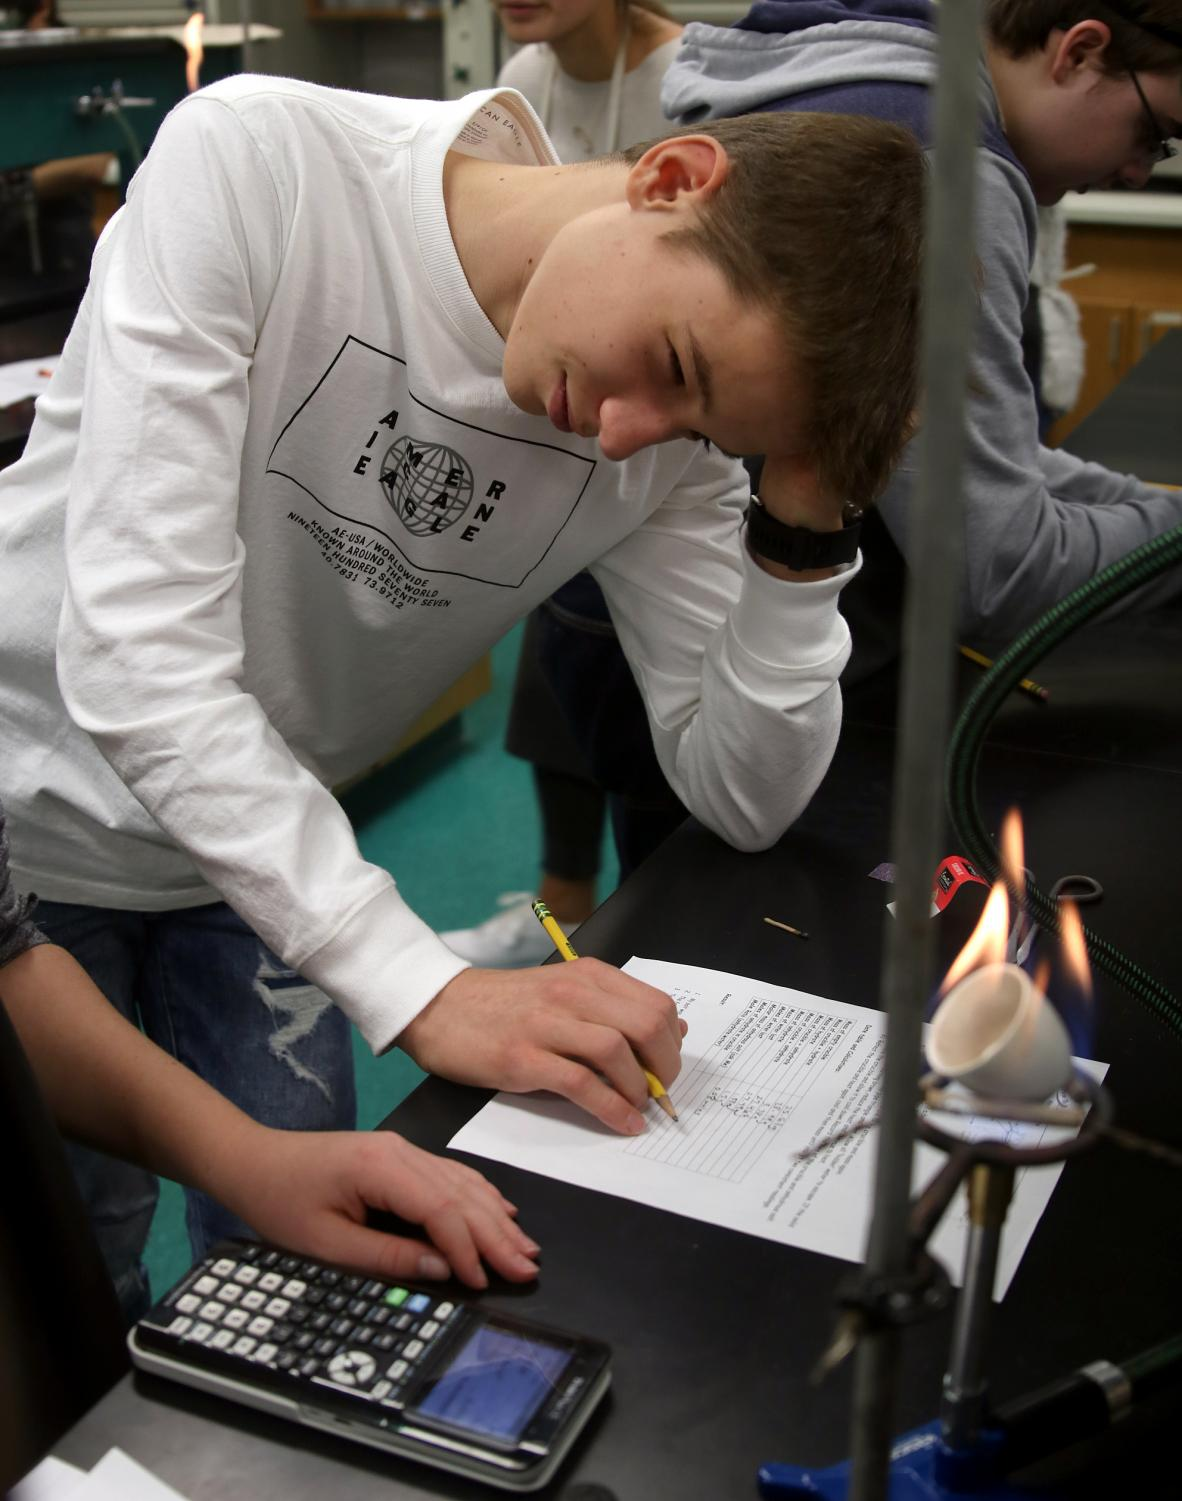 Truman Abbe gets stumped on a question during his hydrate lab in Sunila Bose's chemistry class.